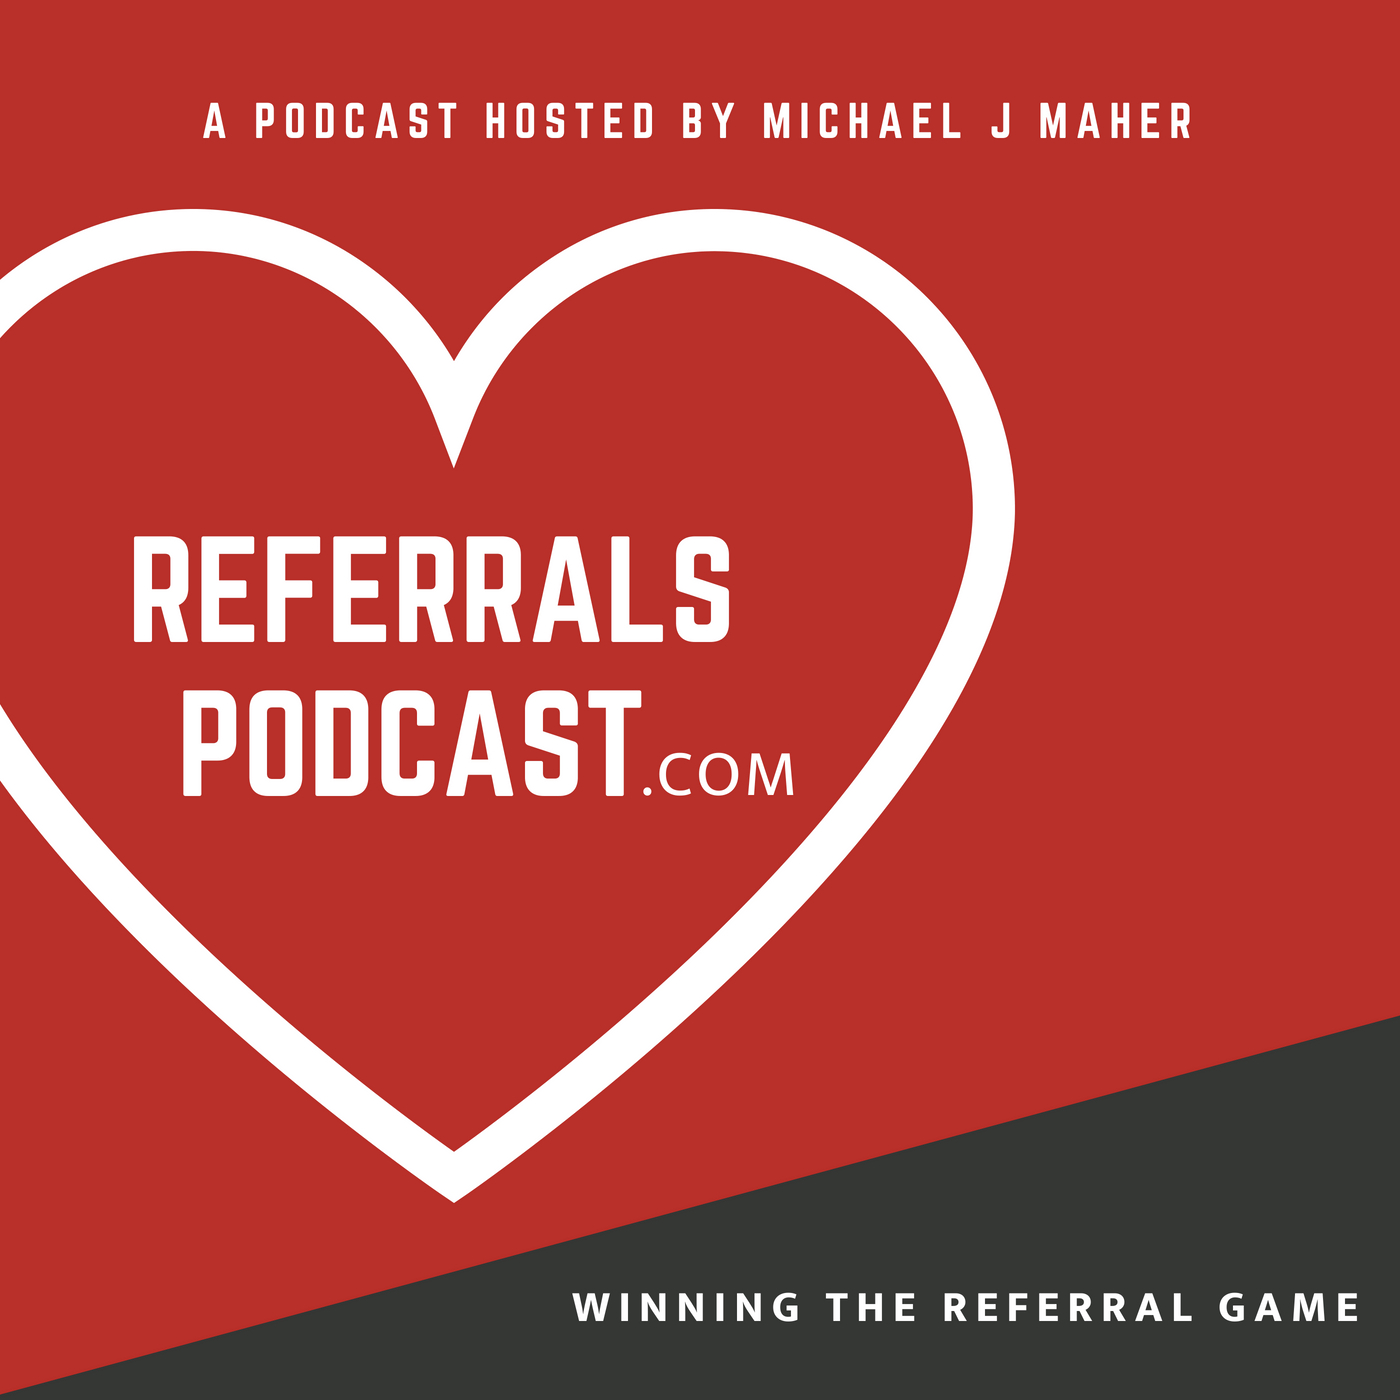 REFERRALS PODCAST show art